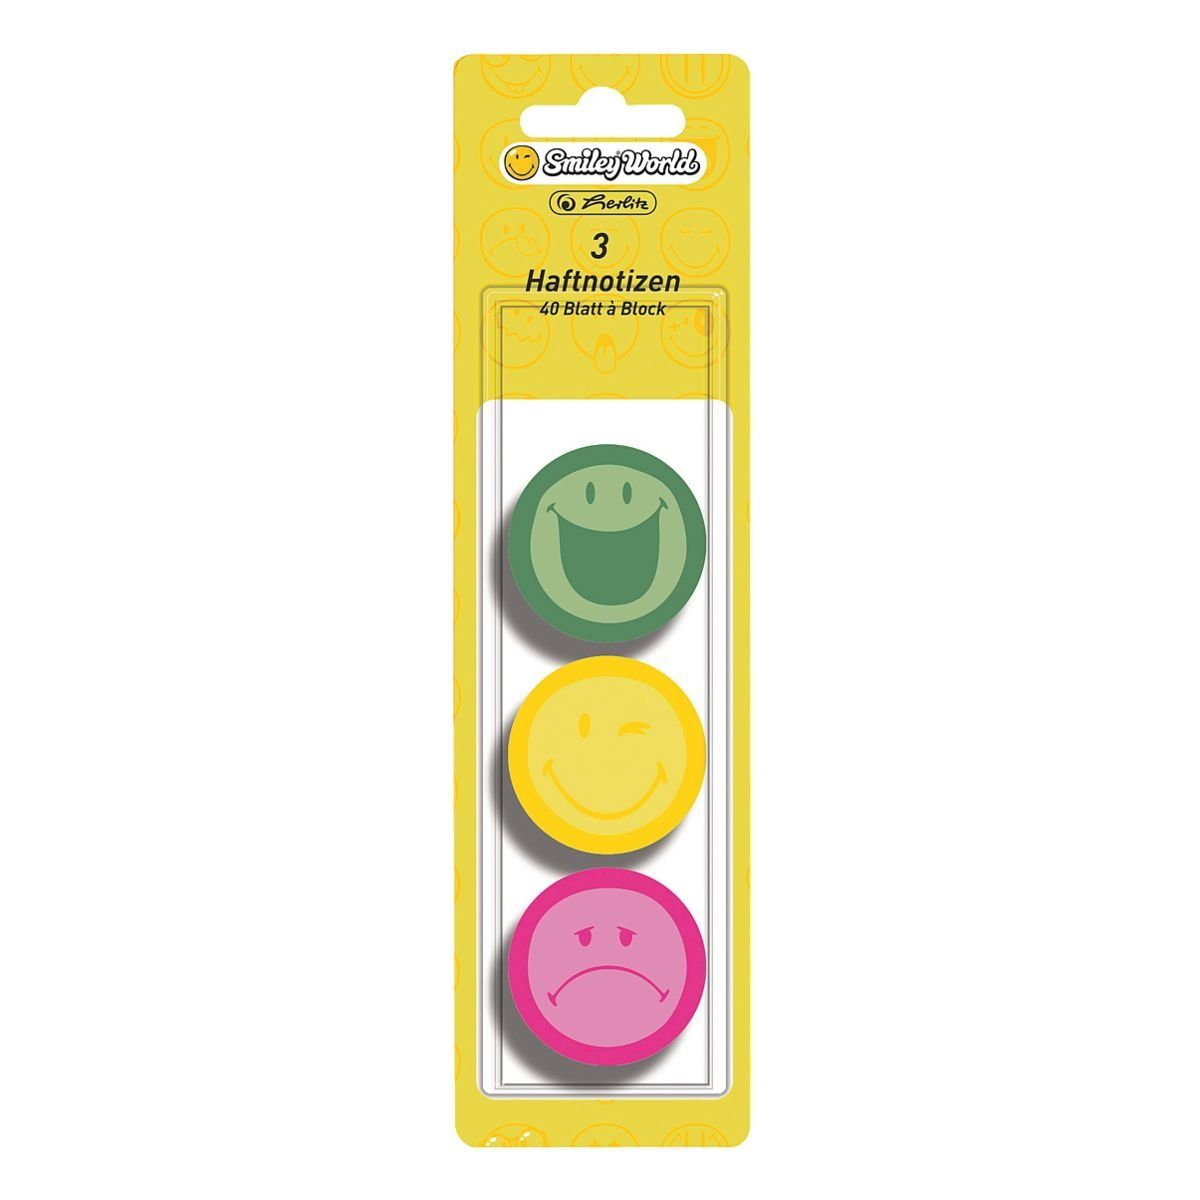 Herlitz Haftotizen »Smiley World«